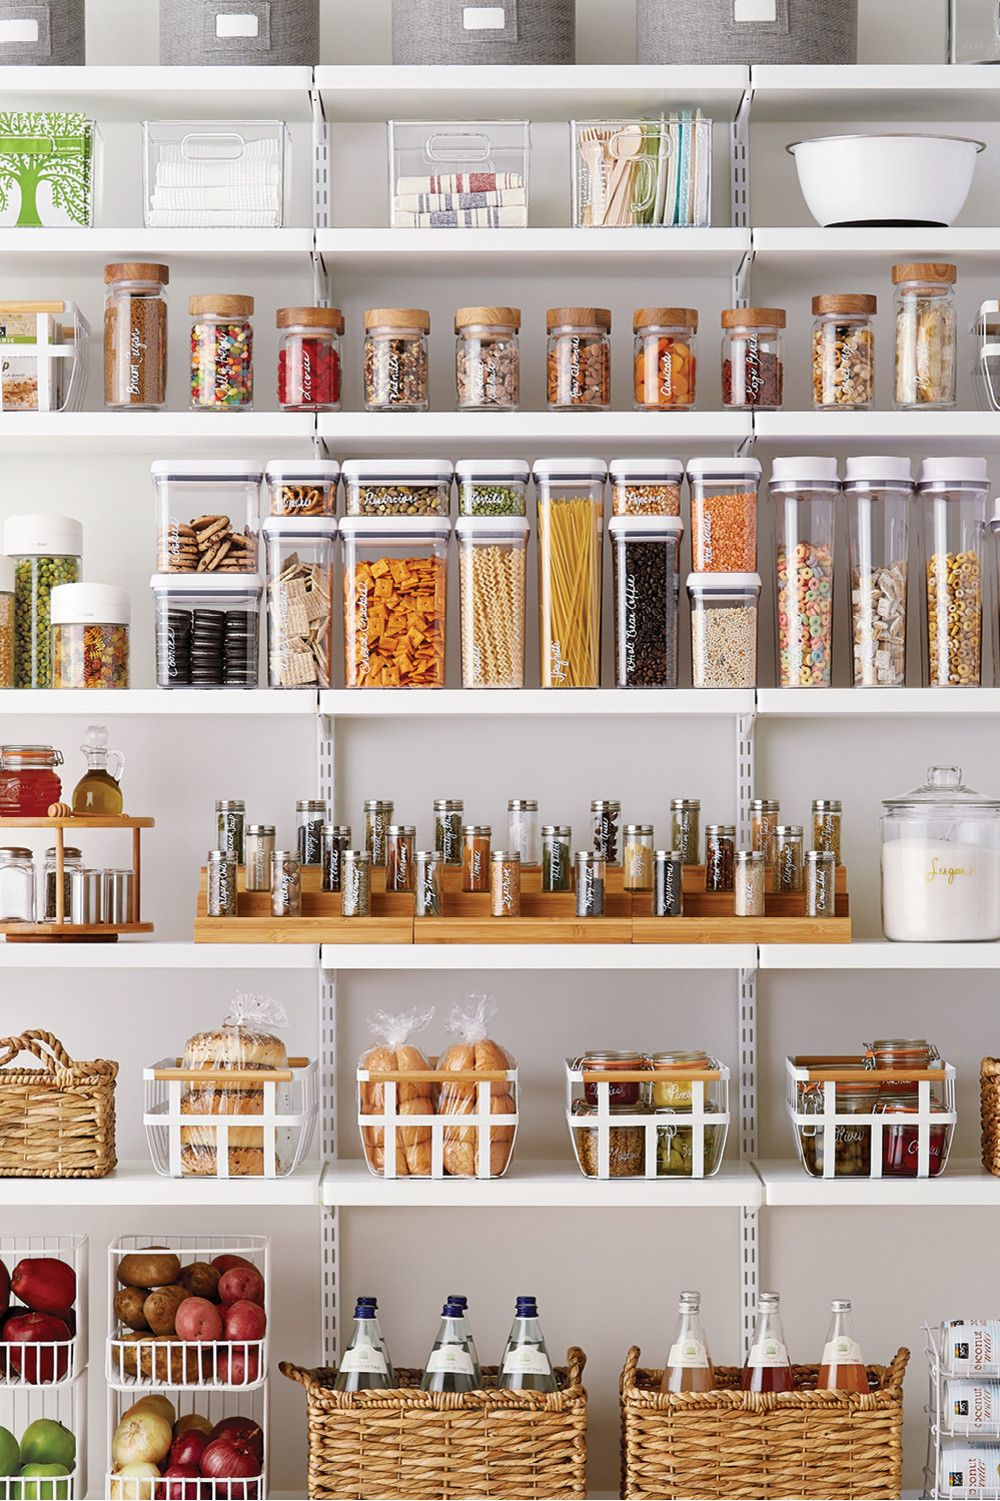 Kitchen Refresh: Pantry | The Container Store Butler Pantry, Pantry Storage  Containers, Pantry